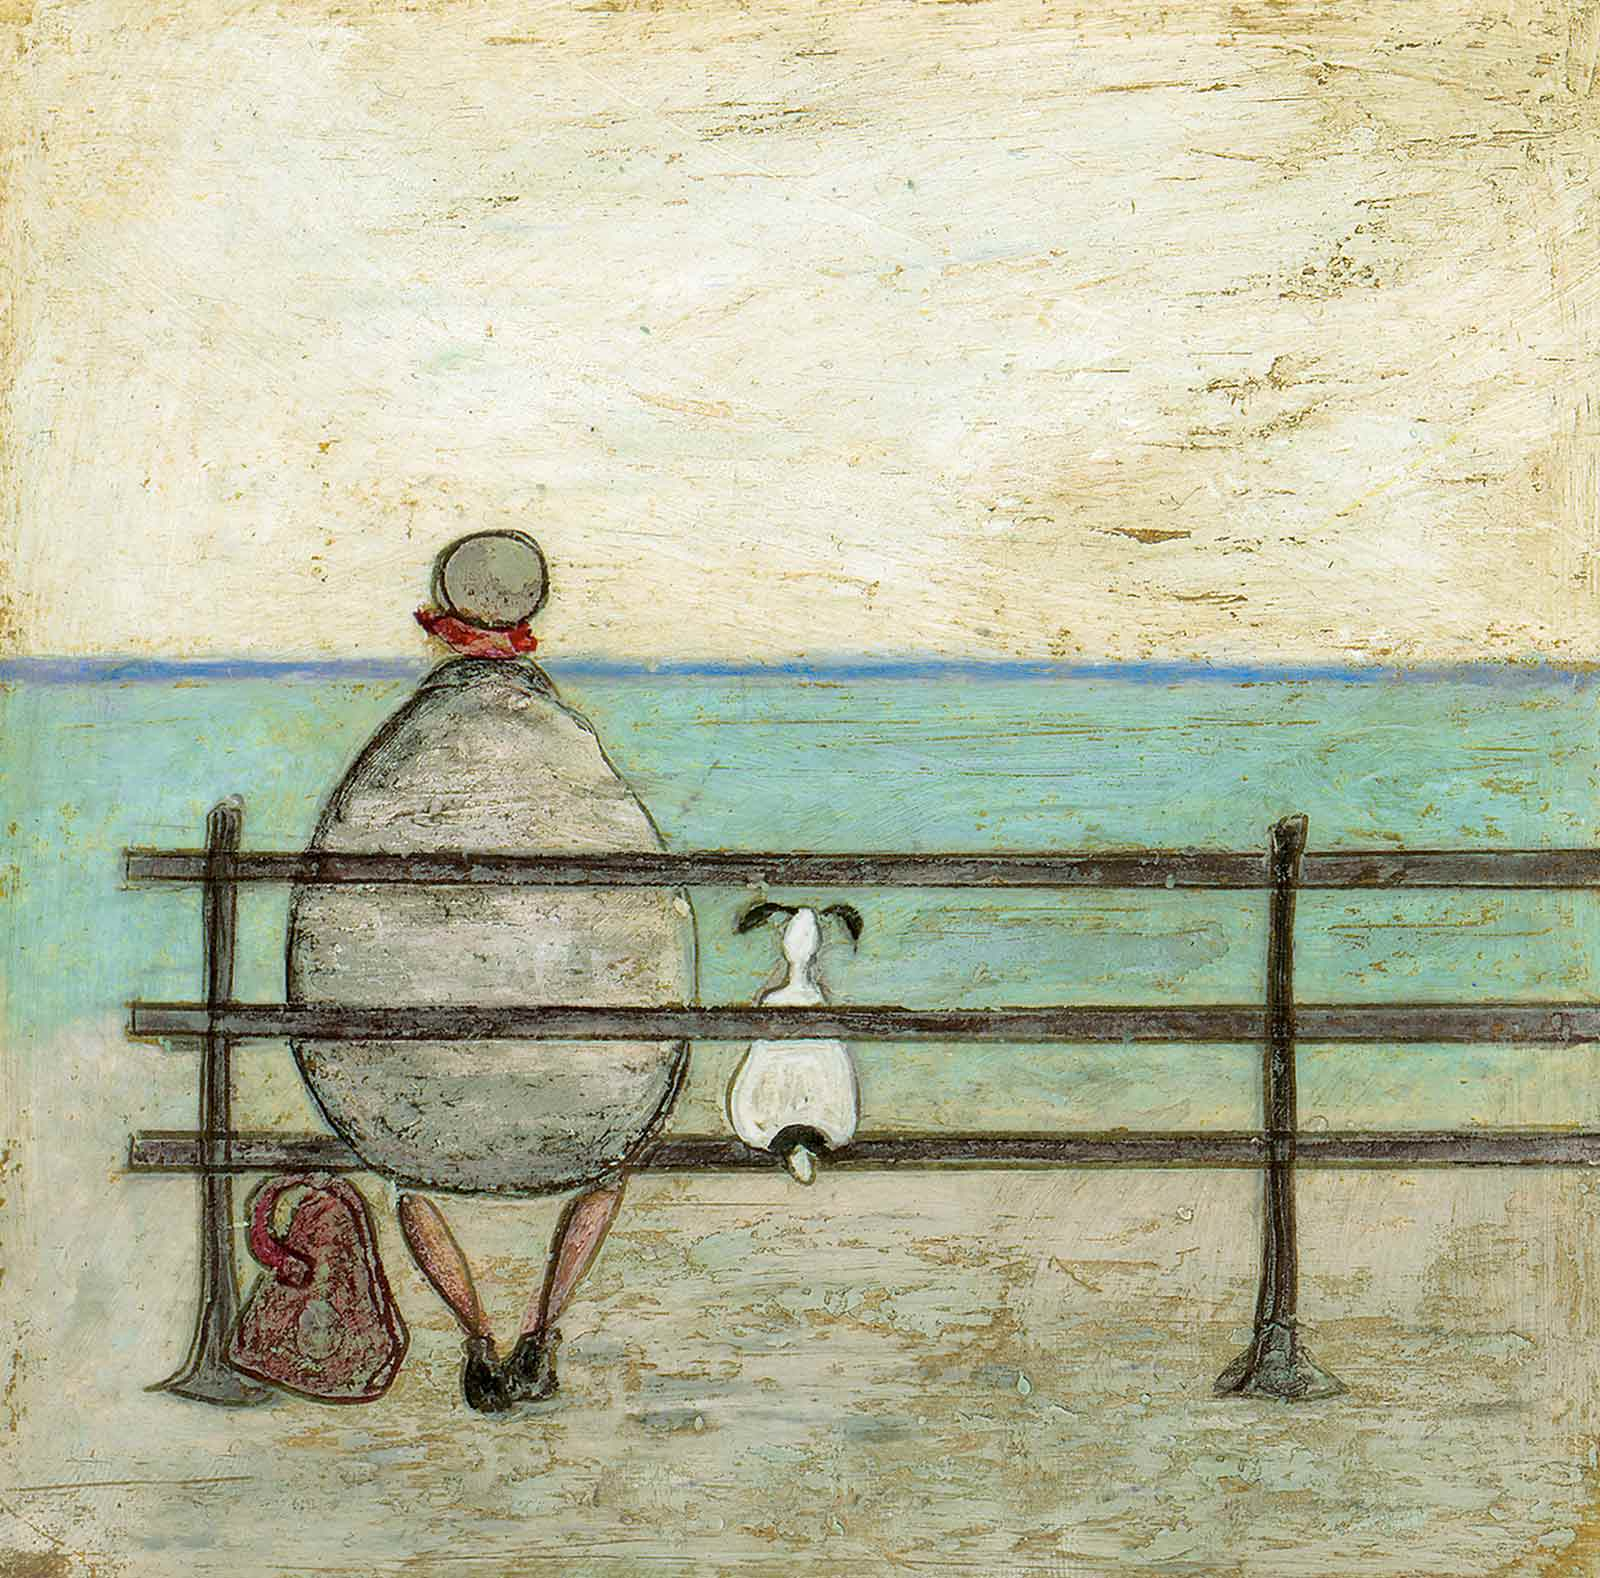 Watching The Day Go By With Doris, Sam Toft